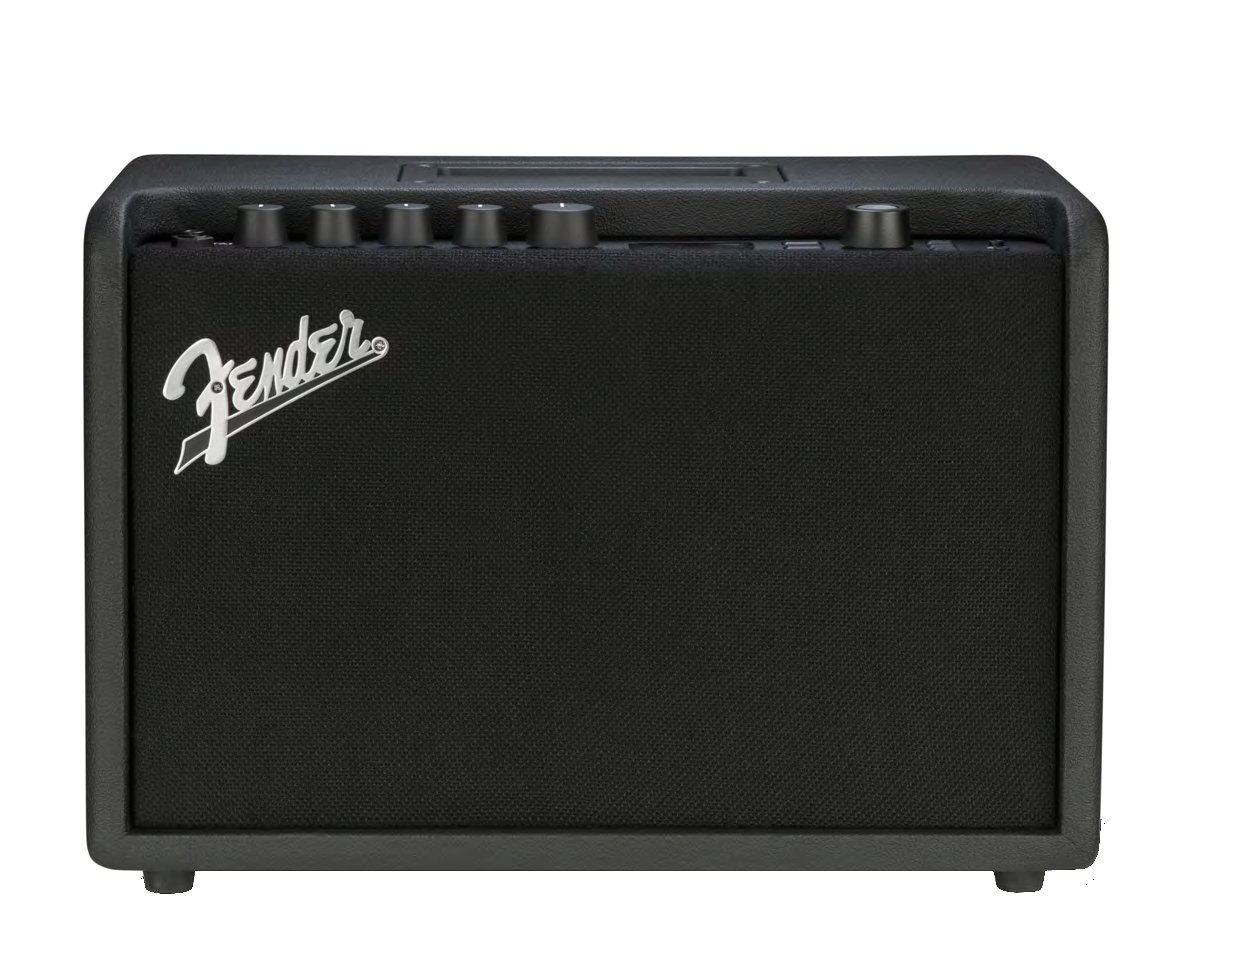 fender mustang gt 40 40w 1 channel 2x6 5 modeling guitar combo amplifier full compass systems. Black Bedroom Furniture Sets. Home Design Ideas